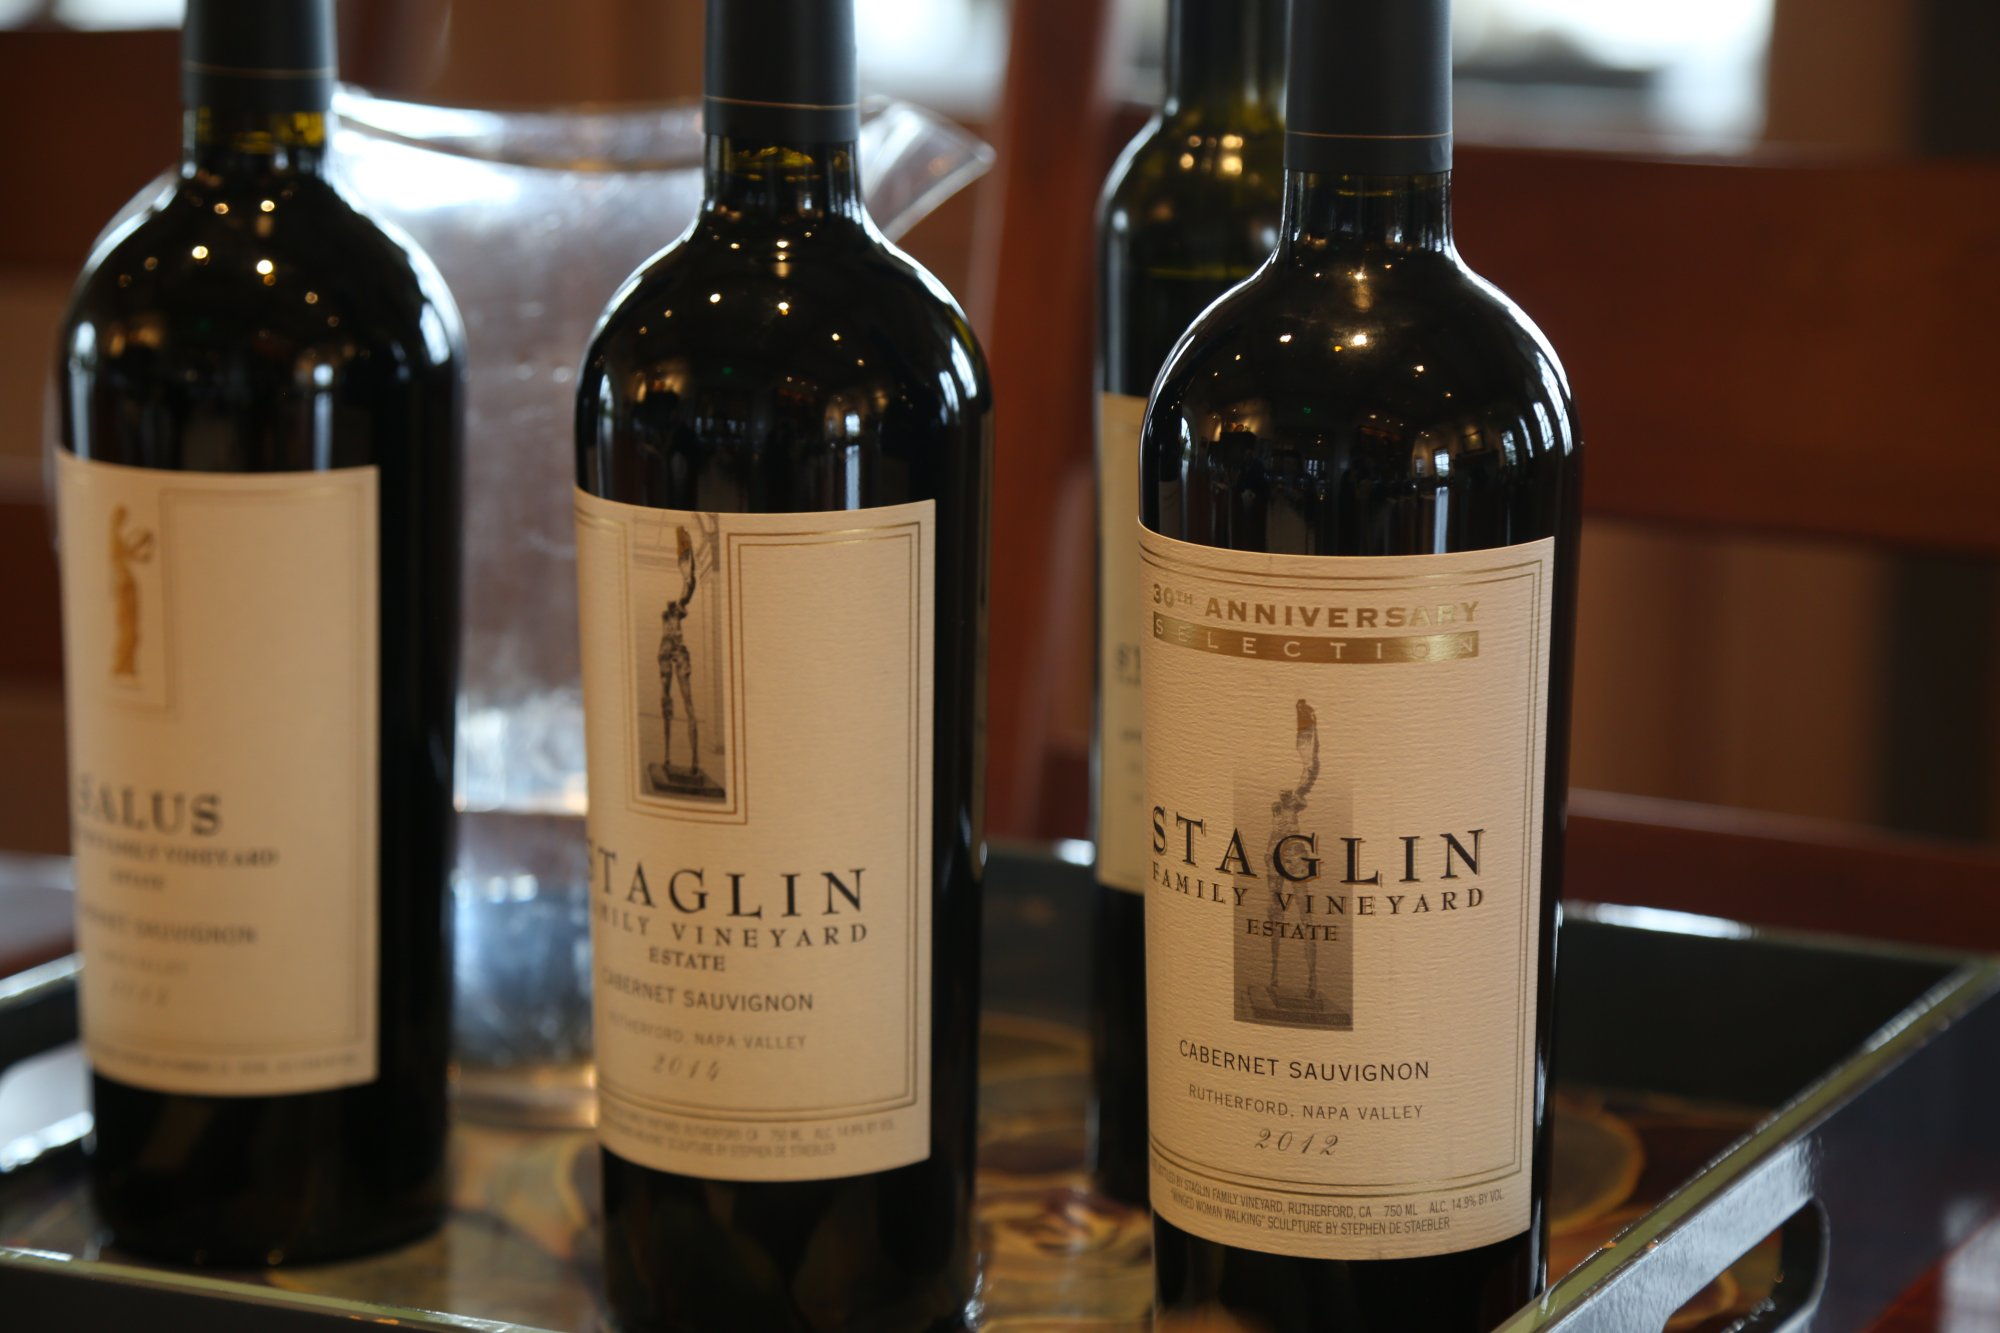 Staglin Family Vineyard The Napa Wine Project